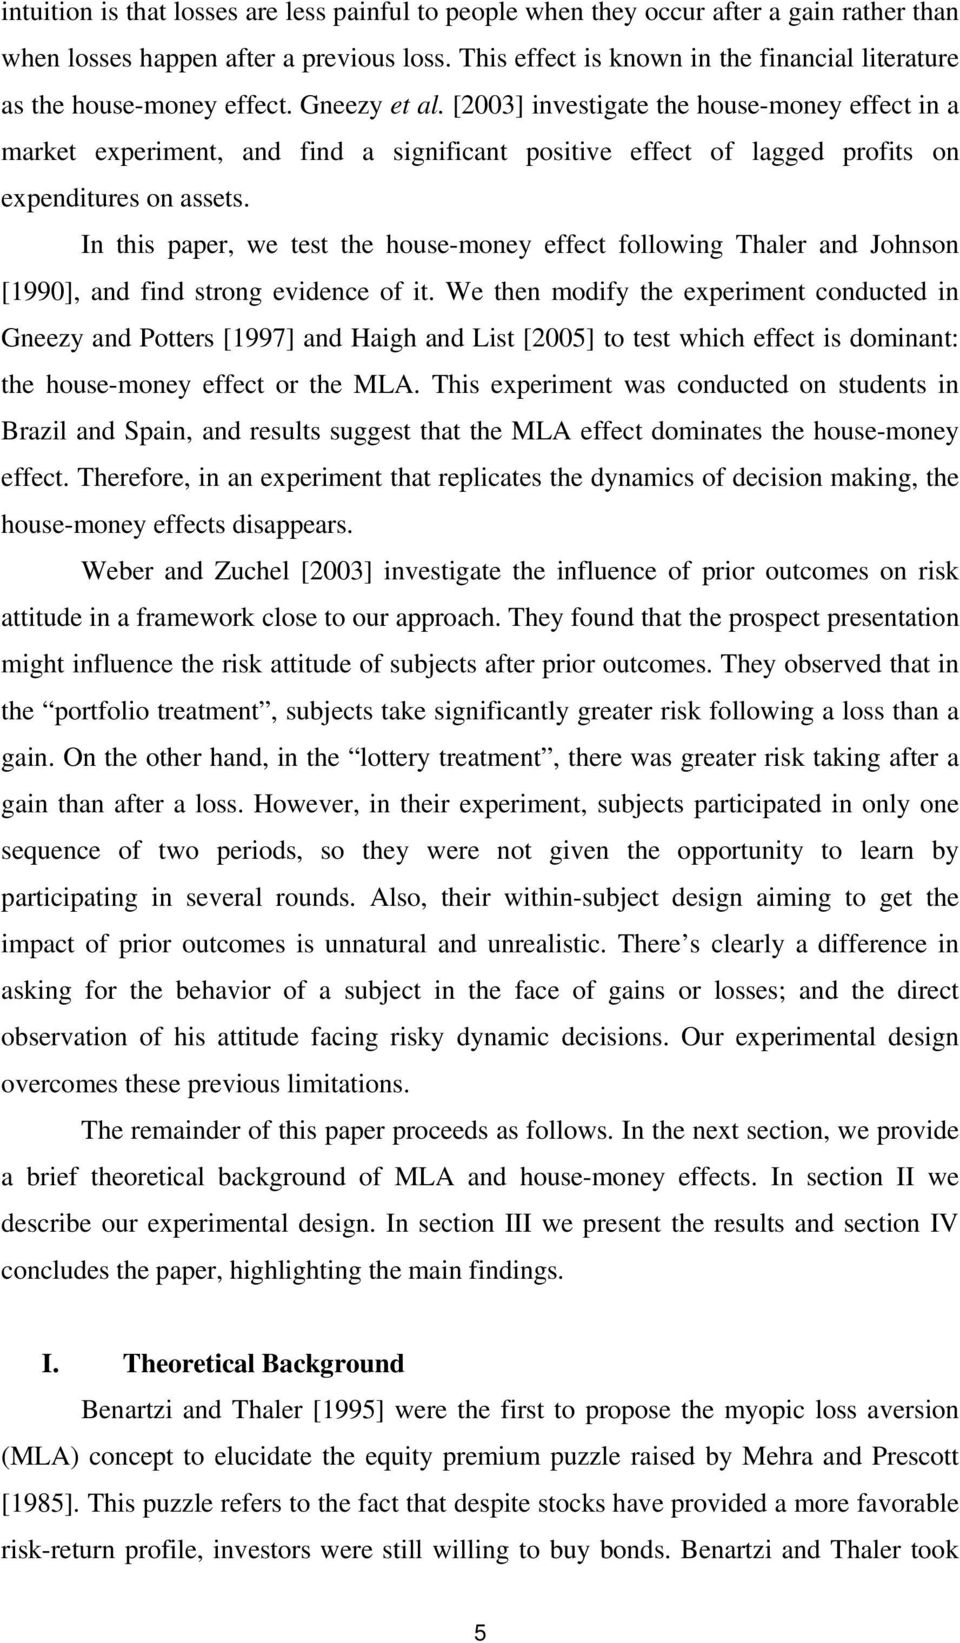 [2003] investigate the house-money effect in a market experiment, and find a significant positive effect of lagged profits on expenditures on assets.